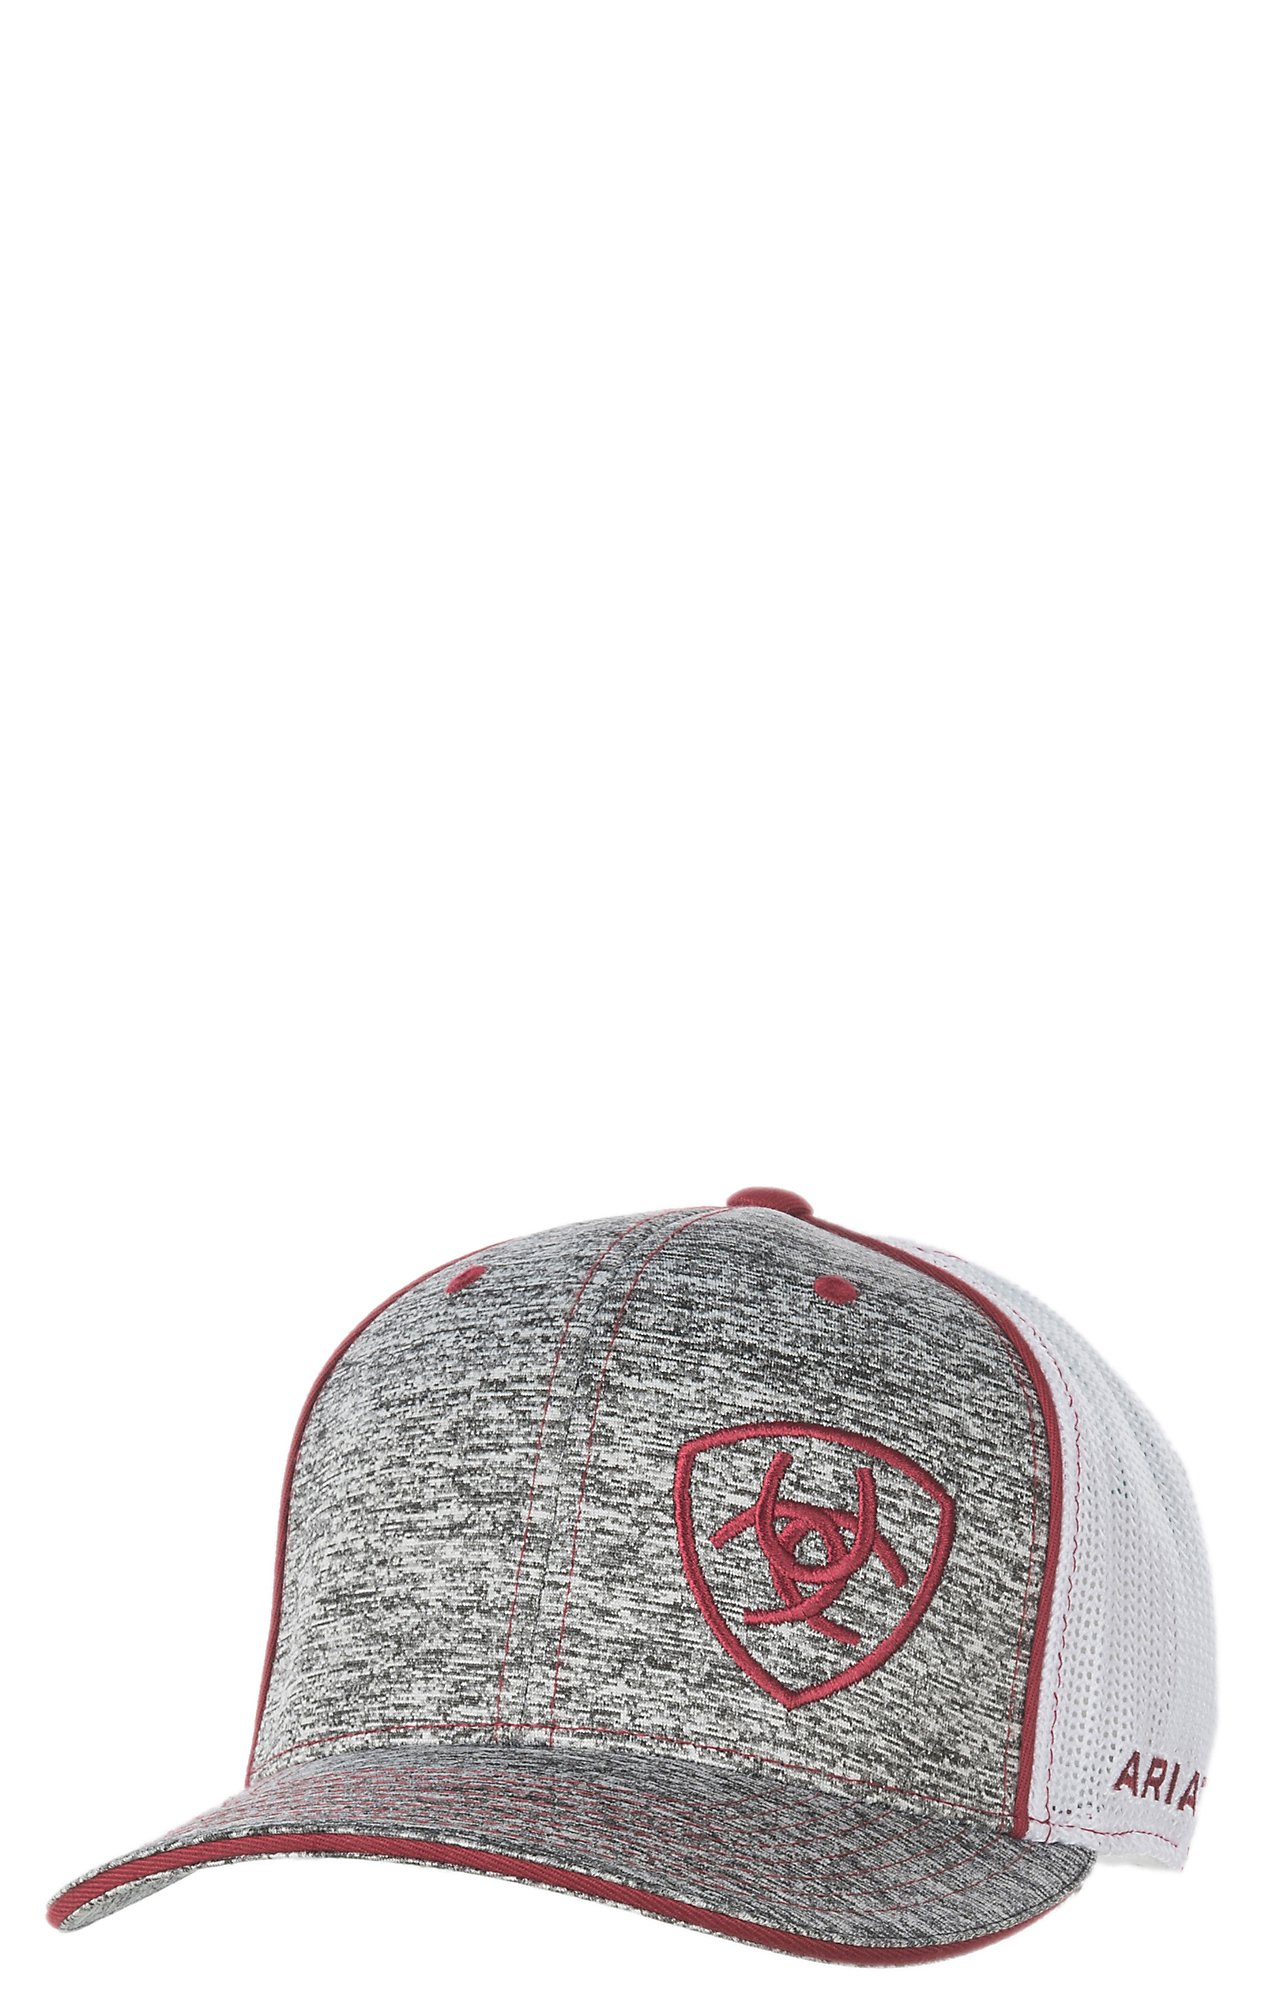 Ariat Heather Grey with Burgundy Embroidered Logo with White Mesh Snap Back  Cap  9f76cc3e40c